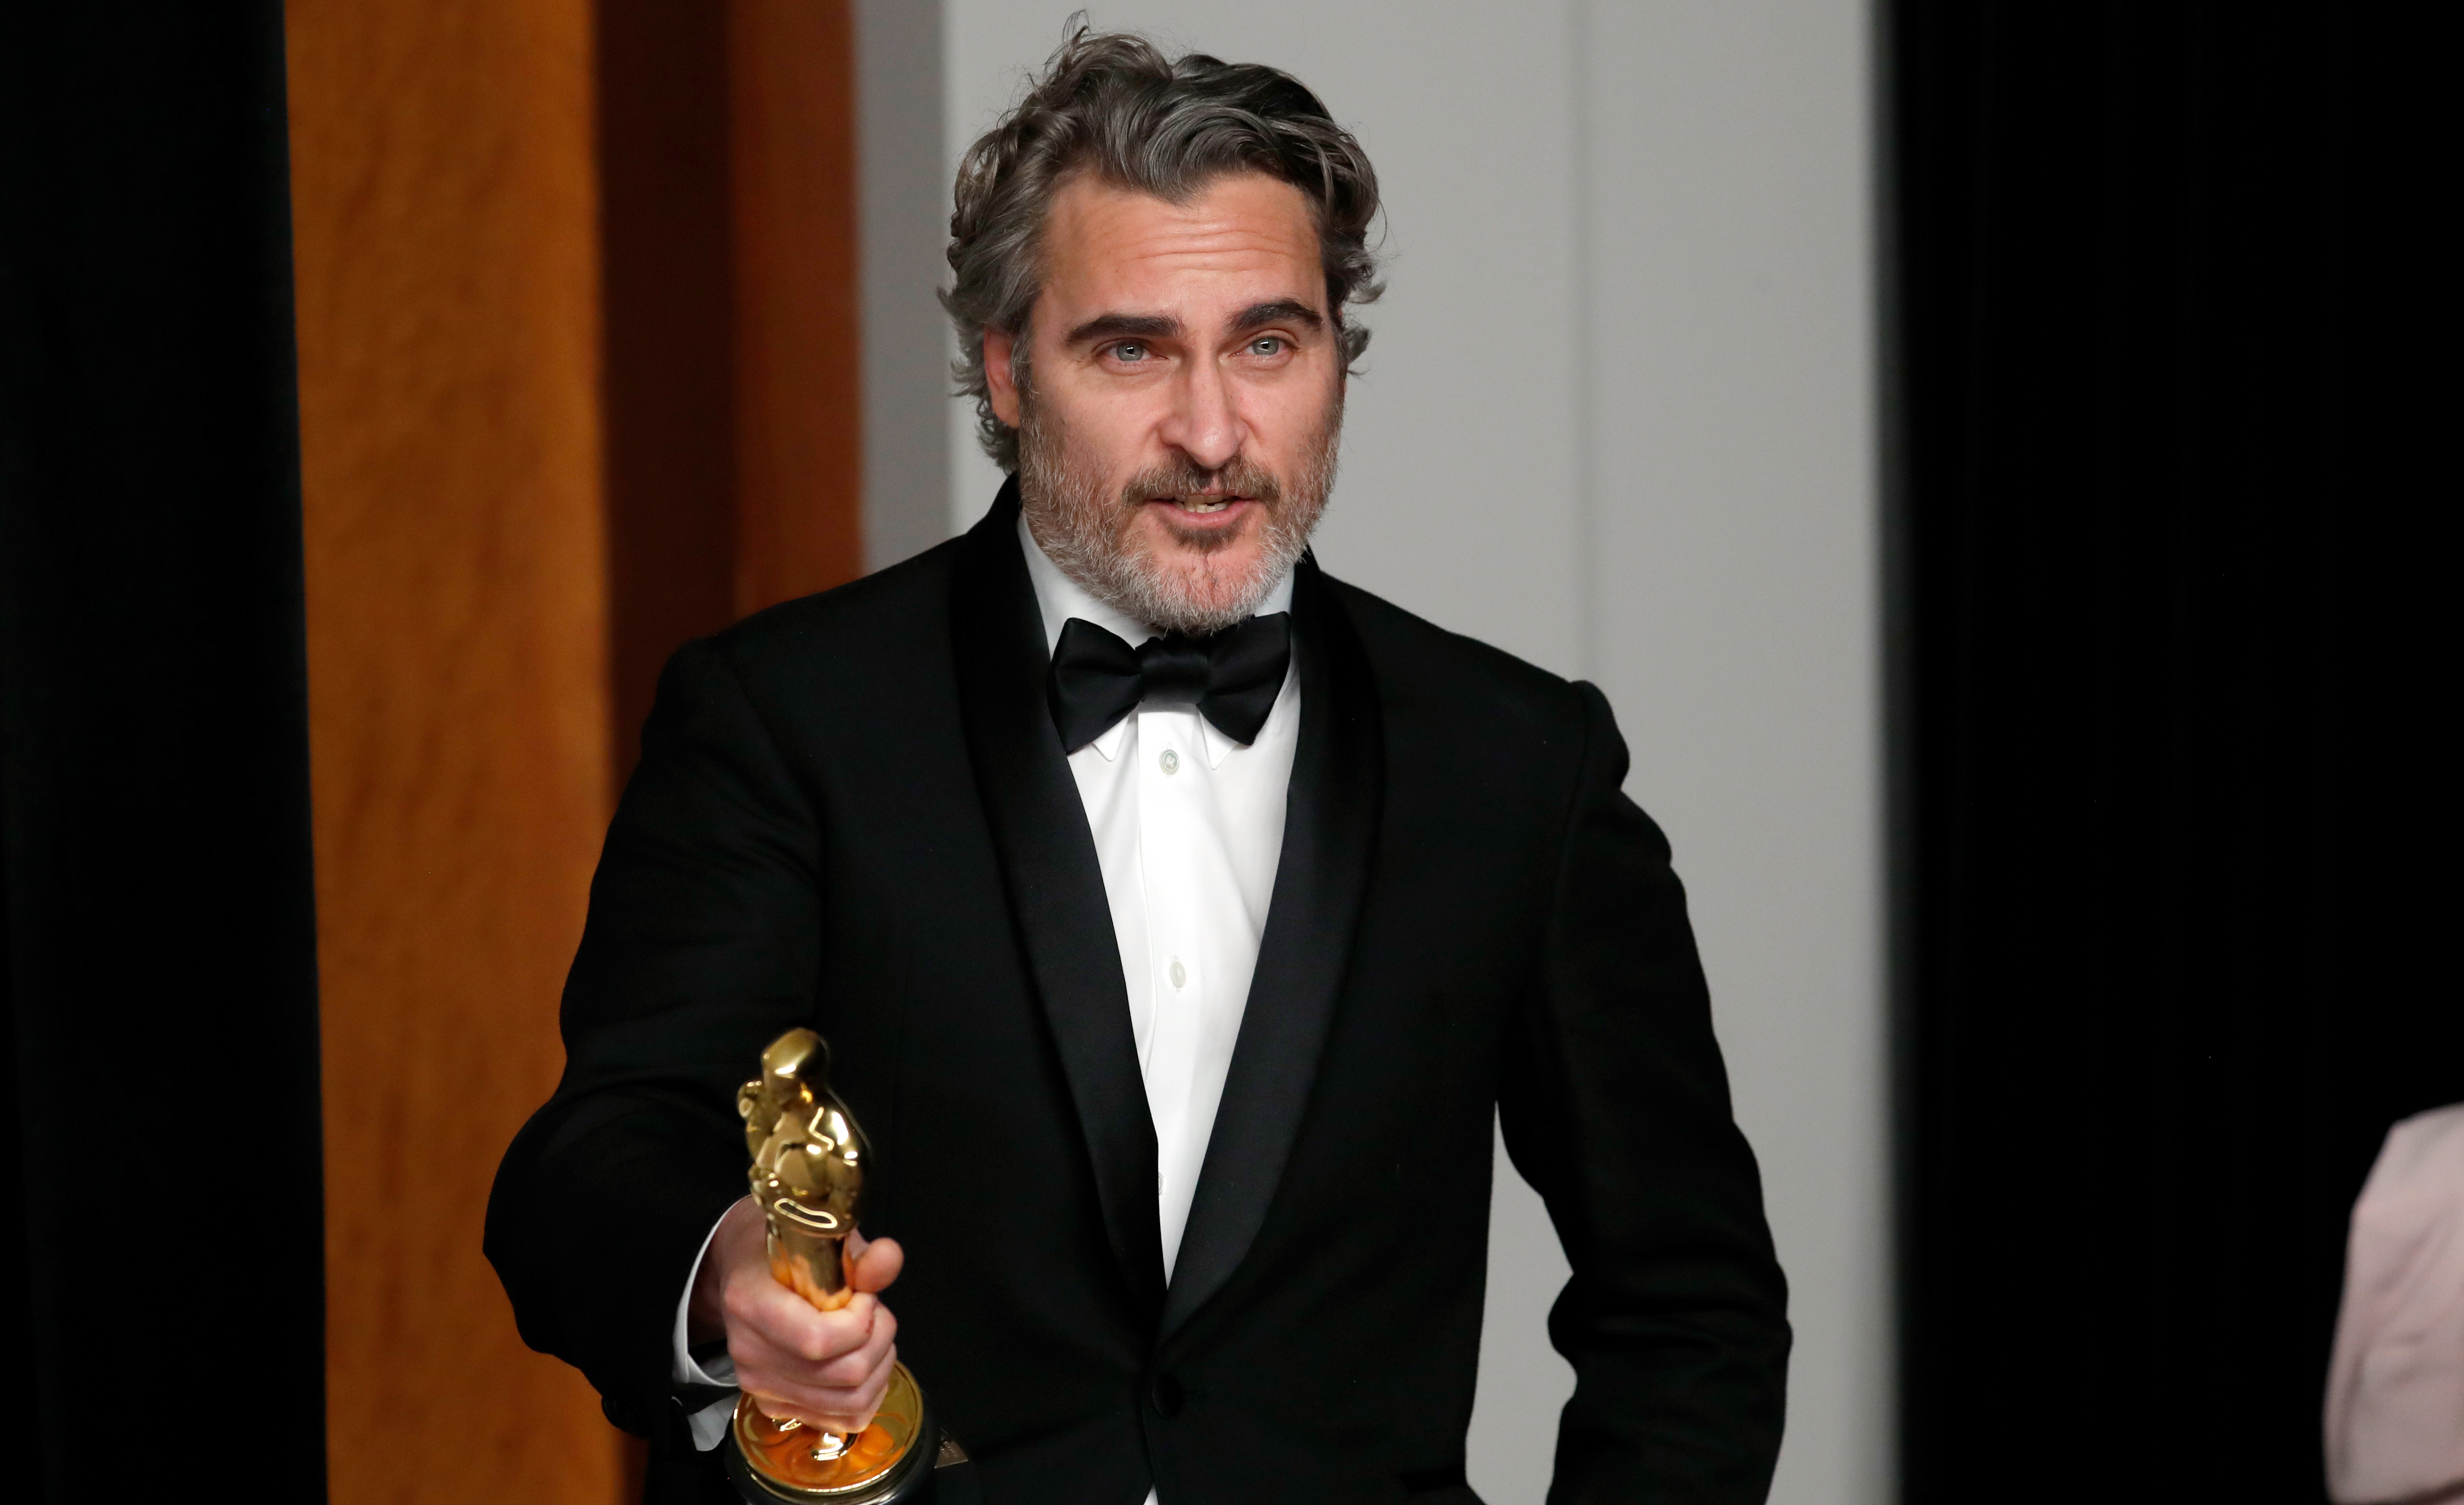 """Joaquin Phoenix poses with his Oscar for Best Actor in a Leading Role for """"Joker"""" in the photo room during the 92nd Academy Awards in Hollywood, Los Angeles, California, U.S., February 9, 2020. REUTERS/Lucas Jackson"""